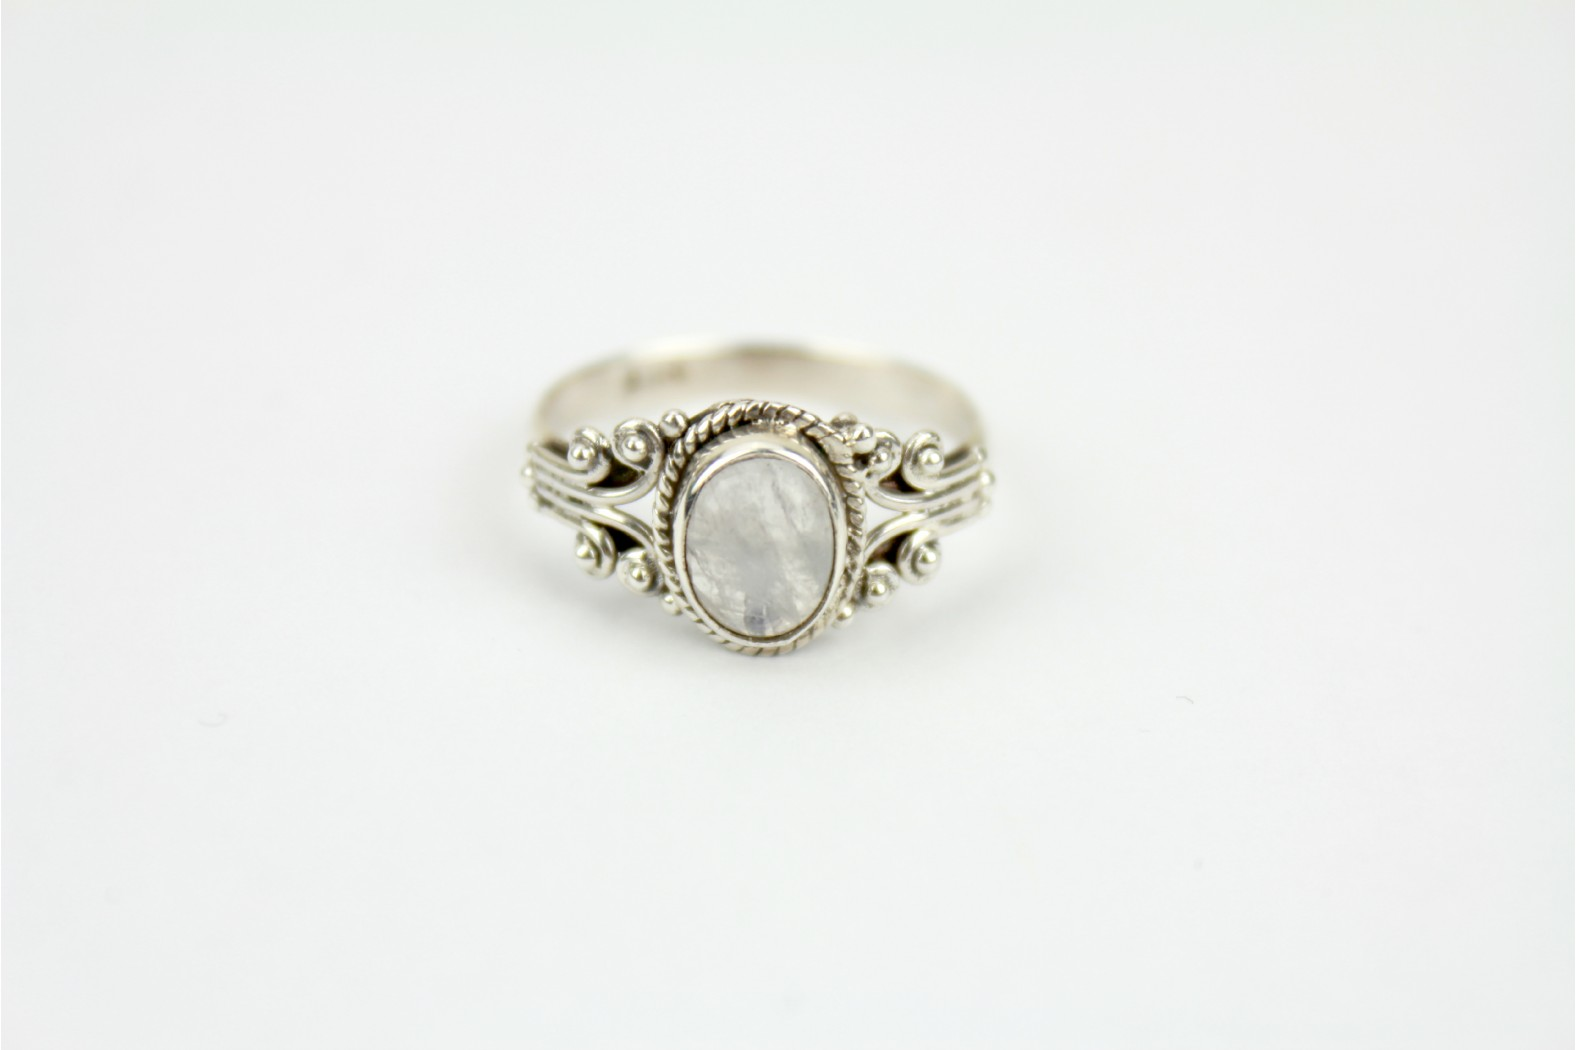 Oval Rainbow Moonstone with filigree shoulder design size 8 or P